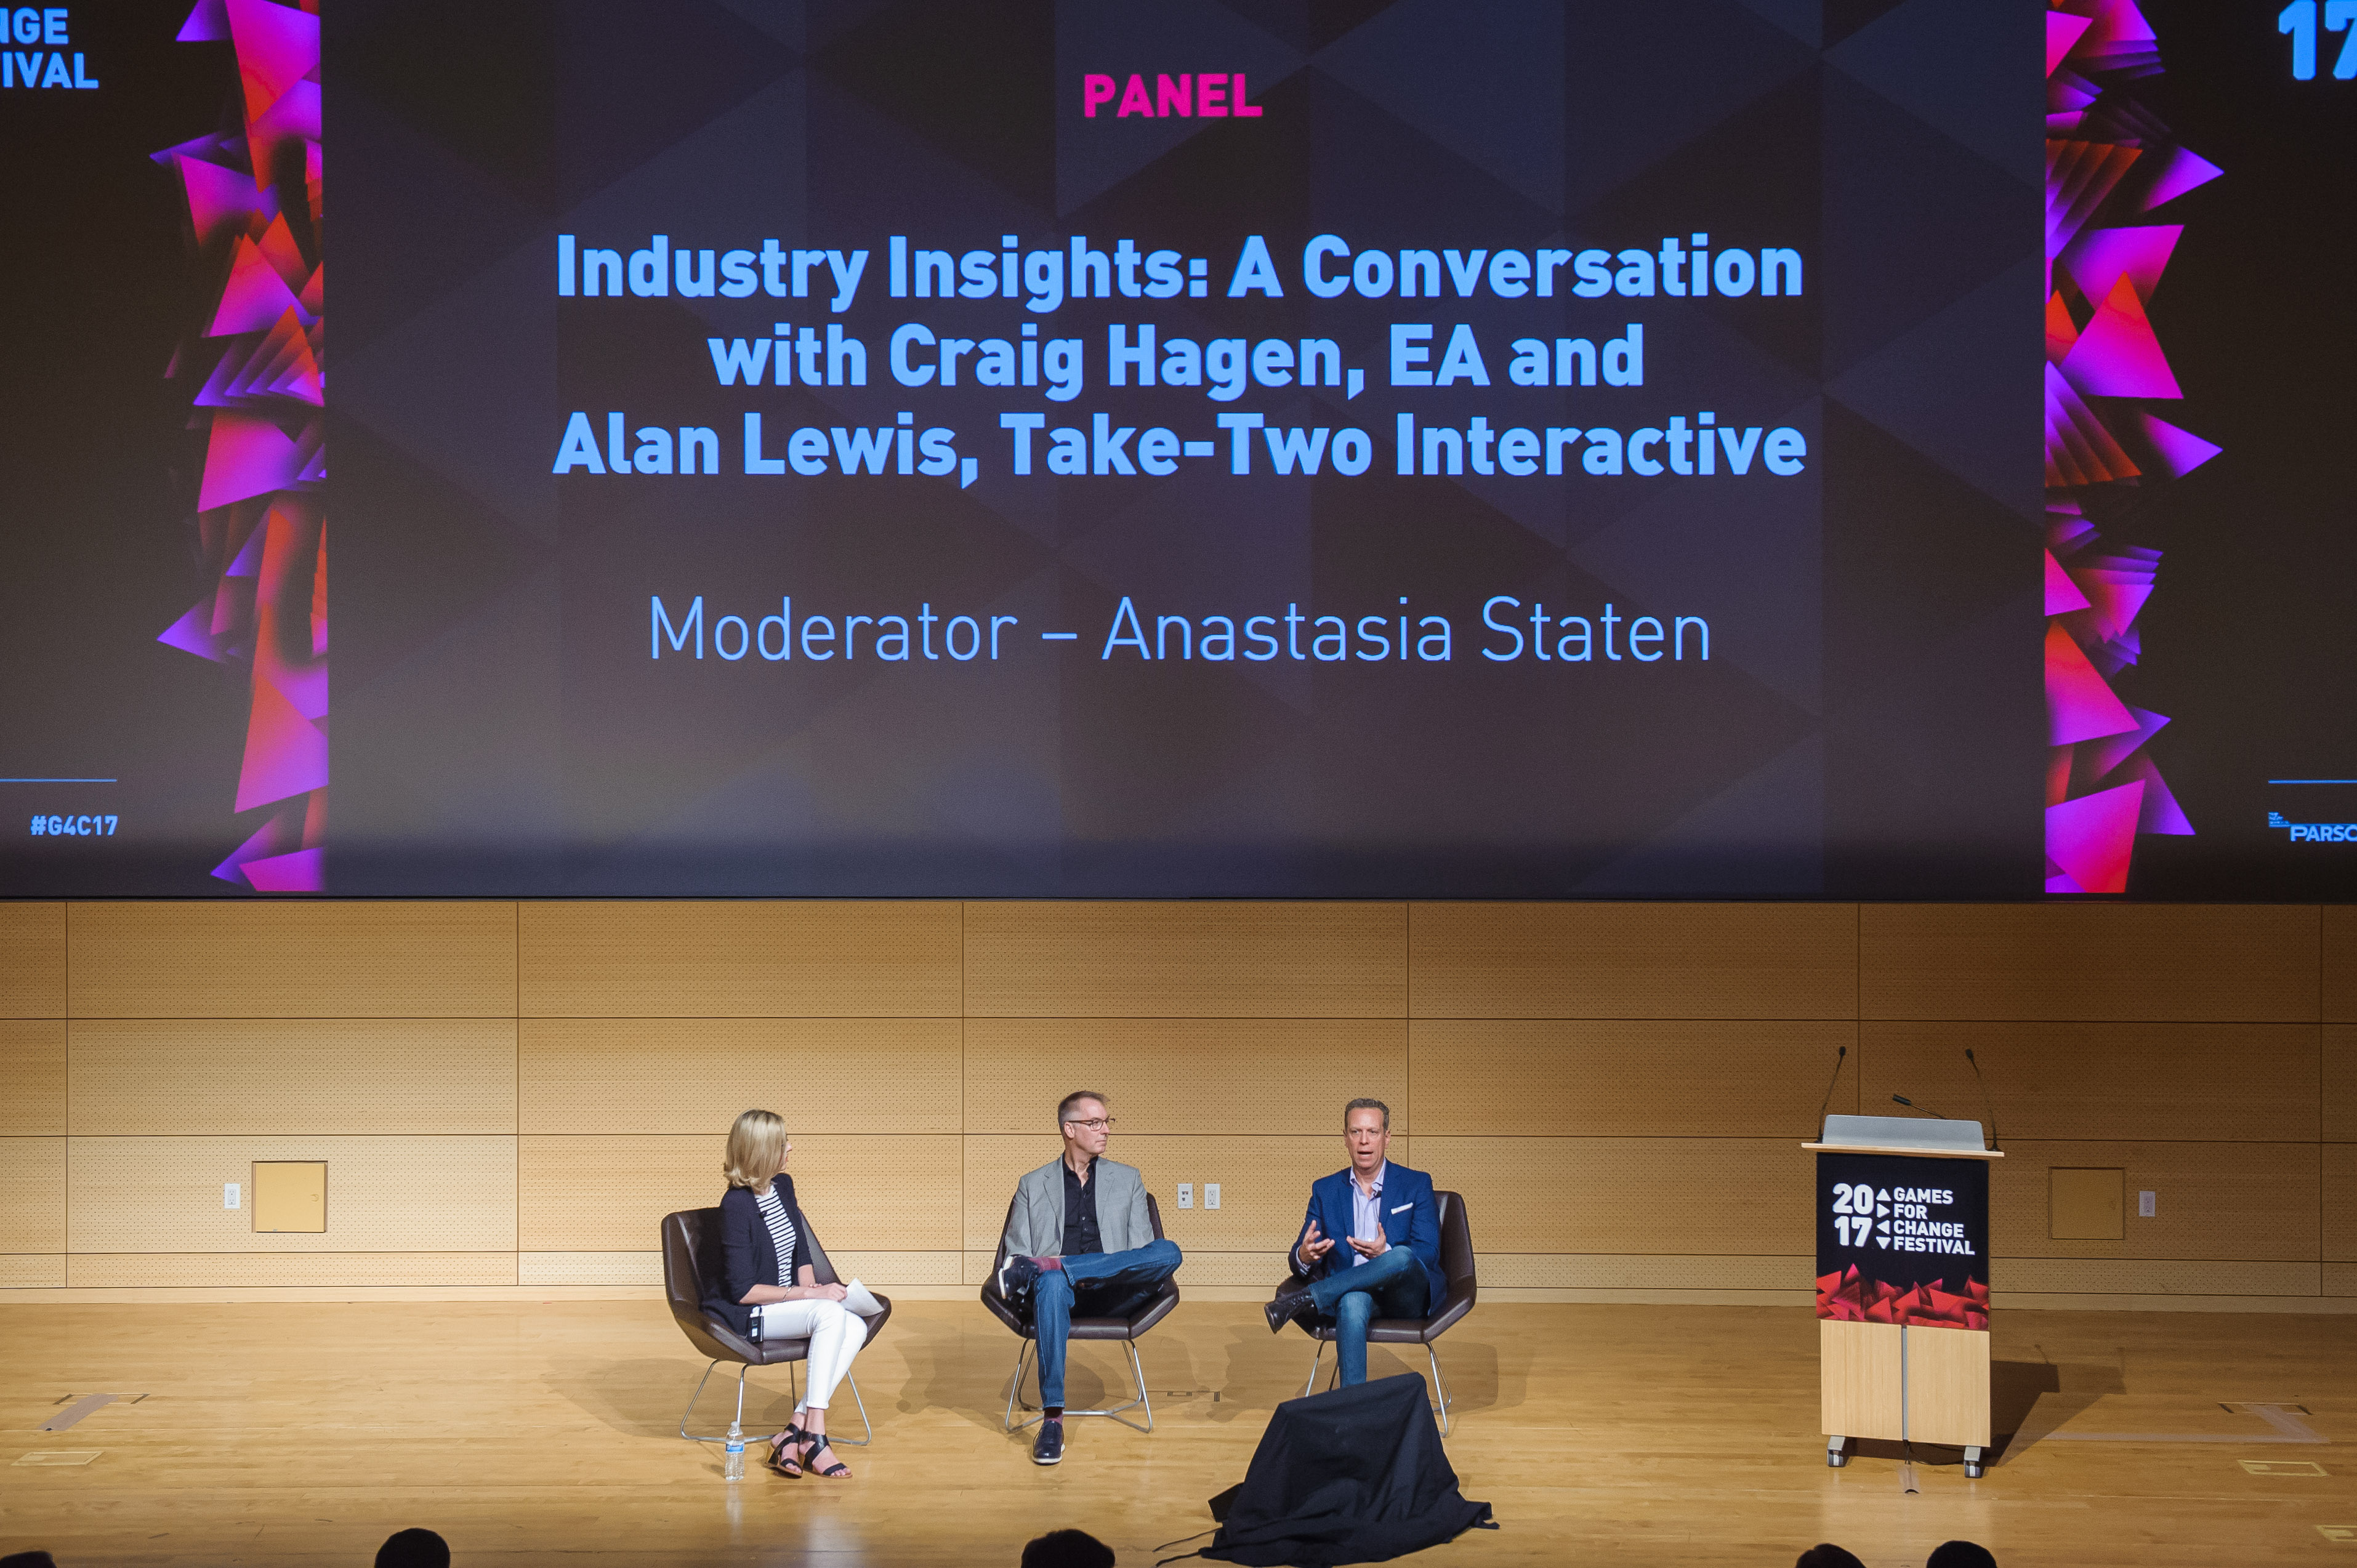 2017 Games for Change Festival - Industry Insights panel photo